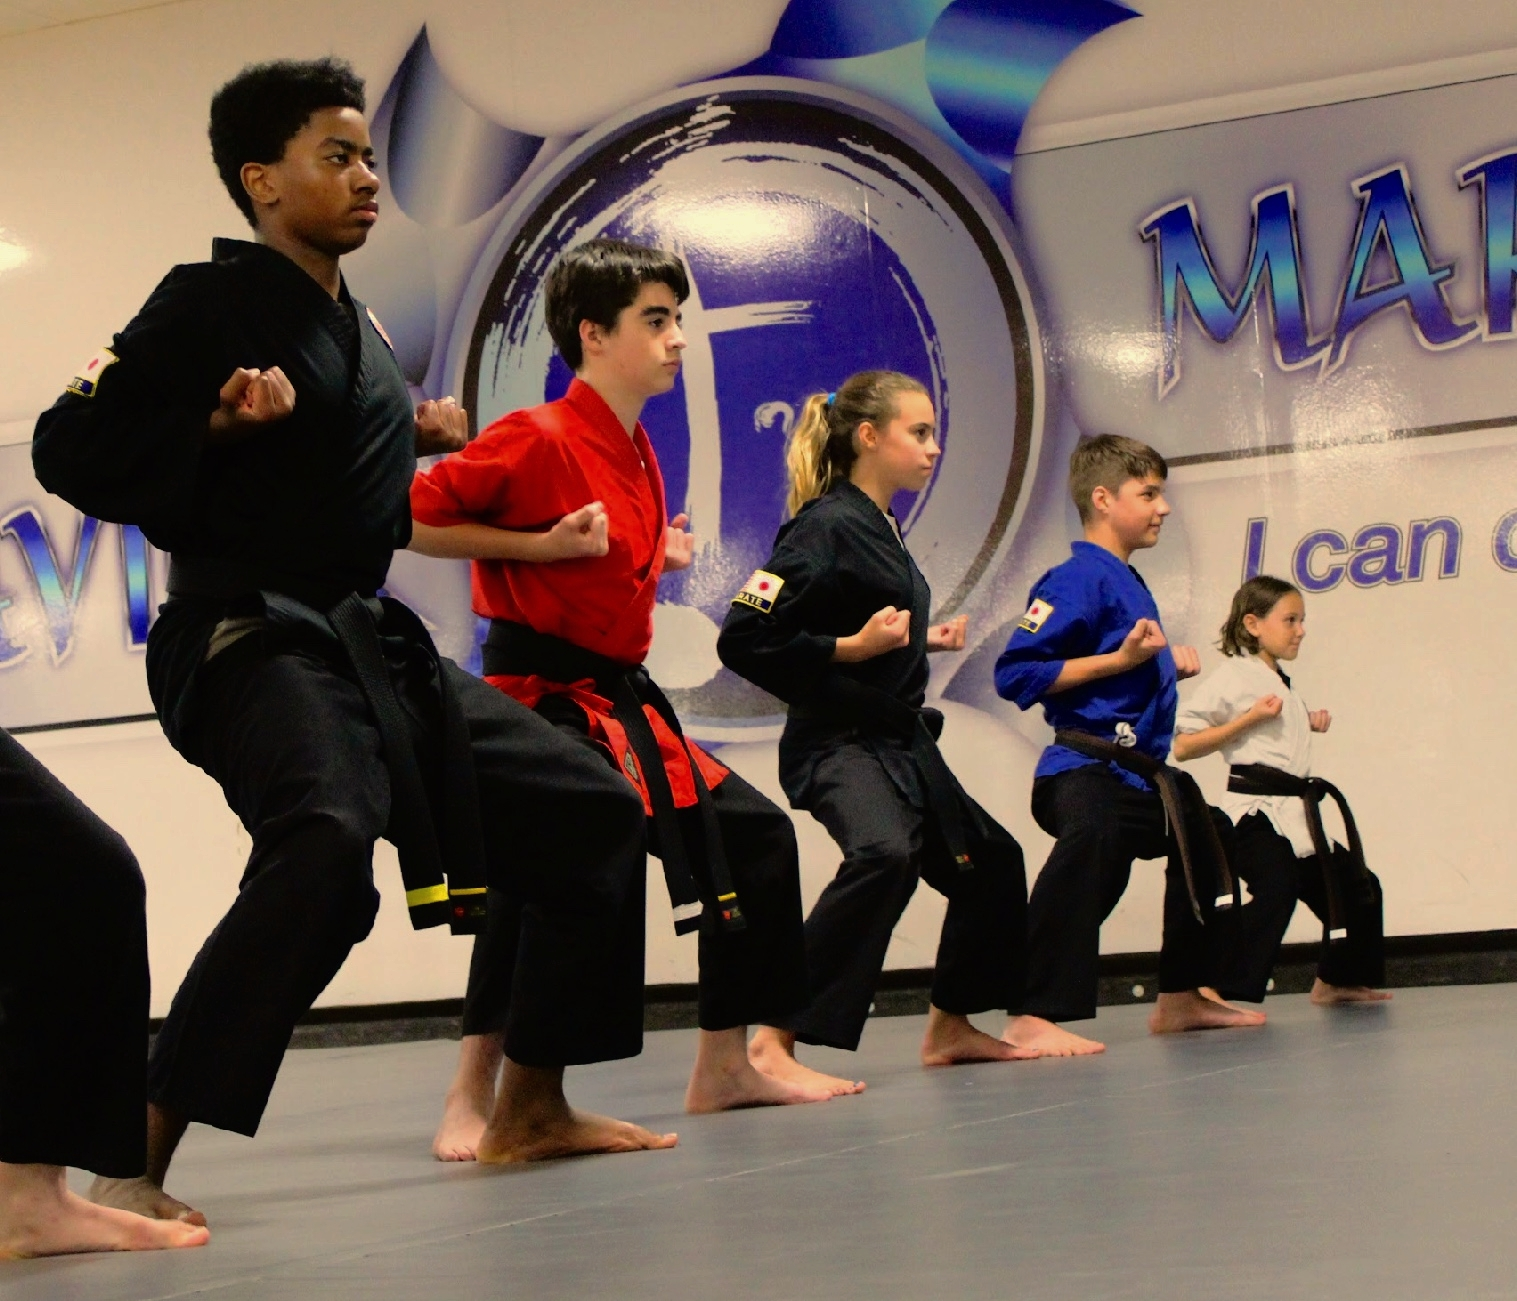 Martial Arts - TEACHING CHILDREN CONFIDENCE